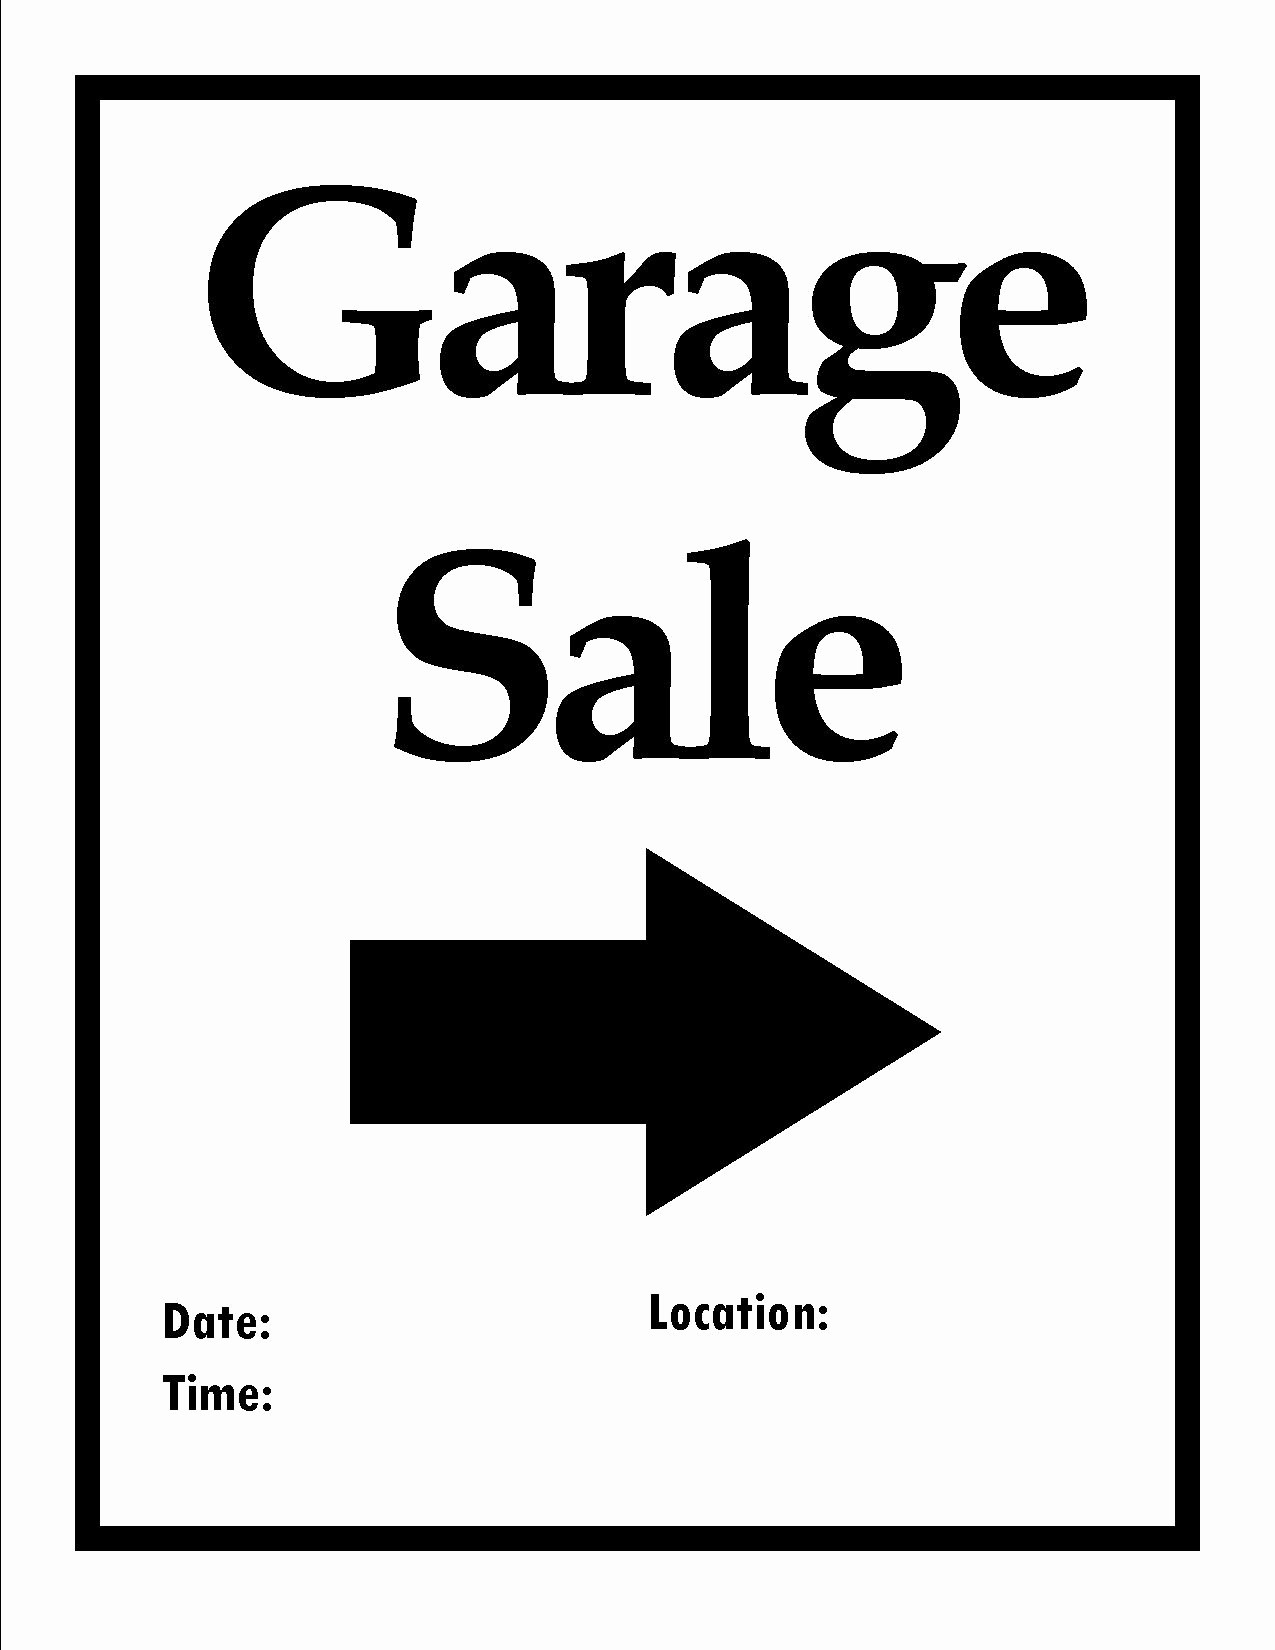 Free Yard Sale Signs Templates Beautiful Printable Items to organize Your Next Move